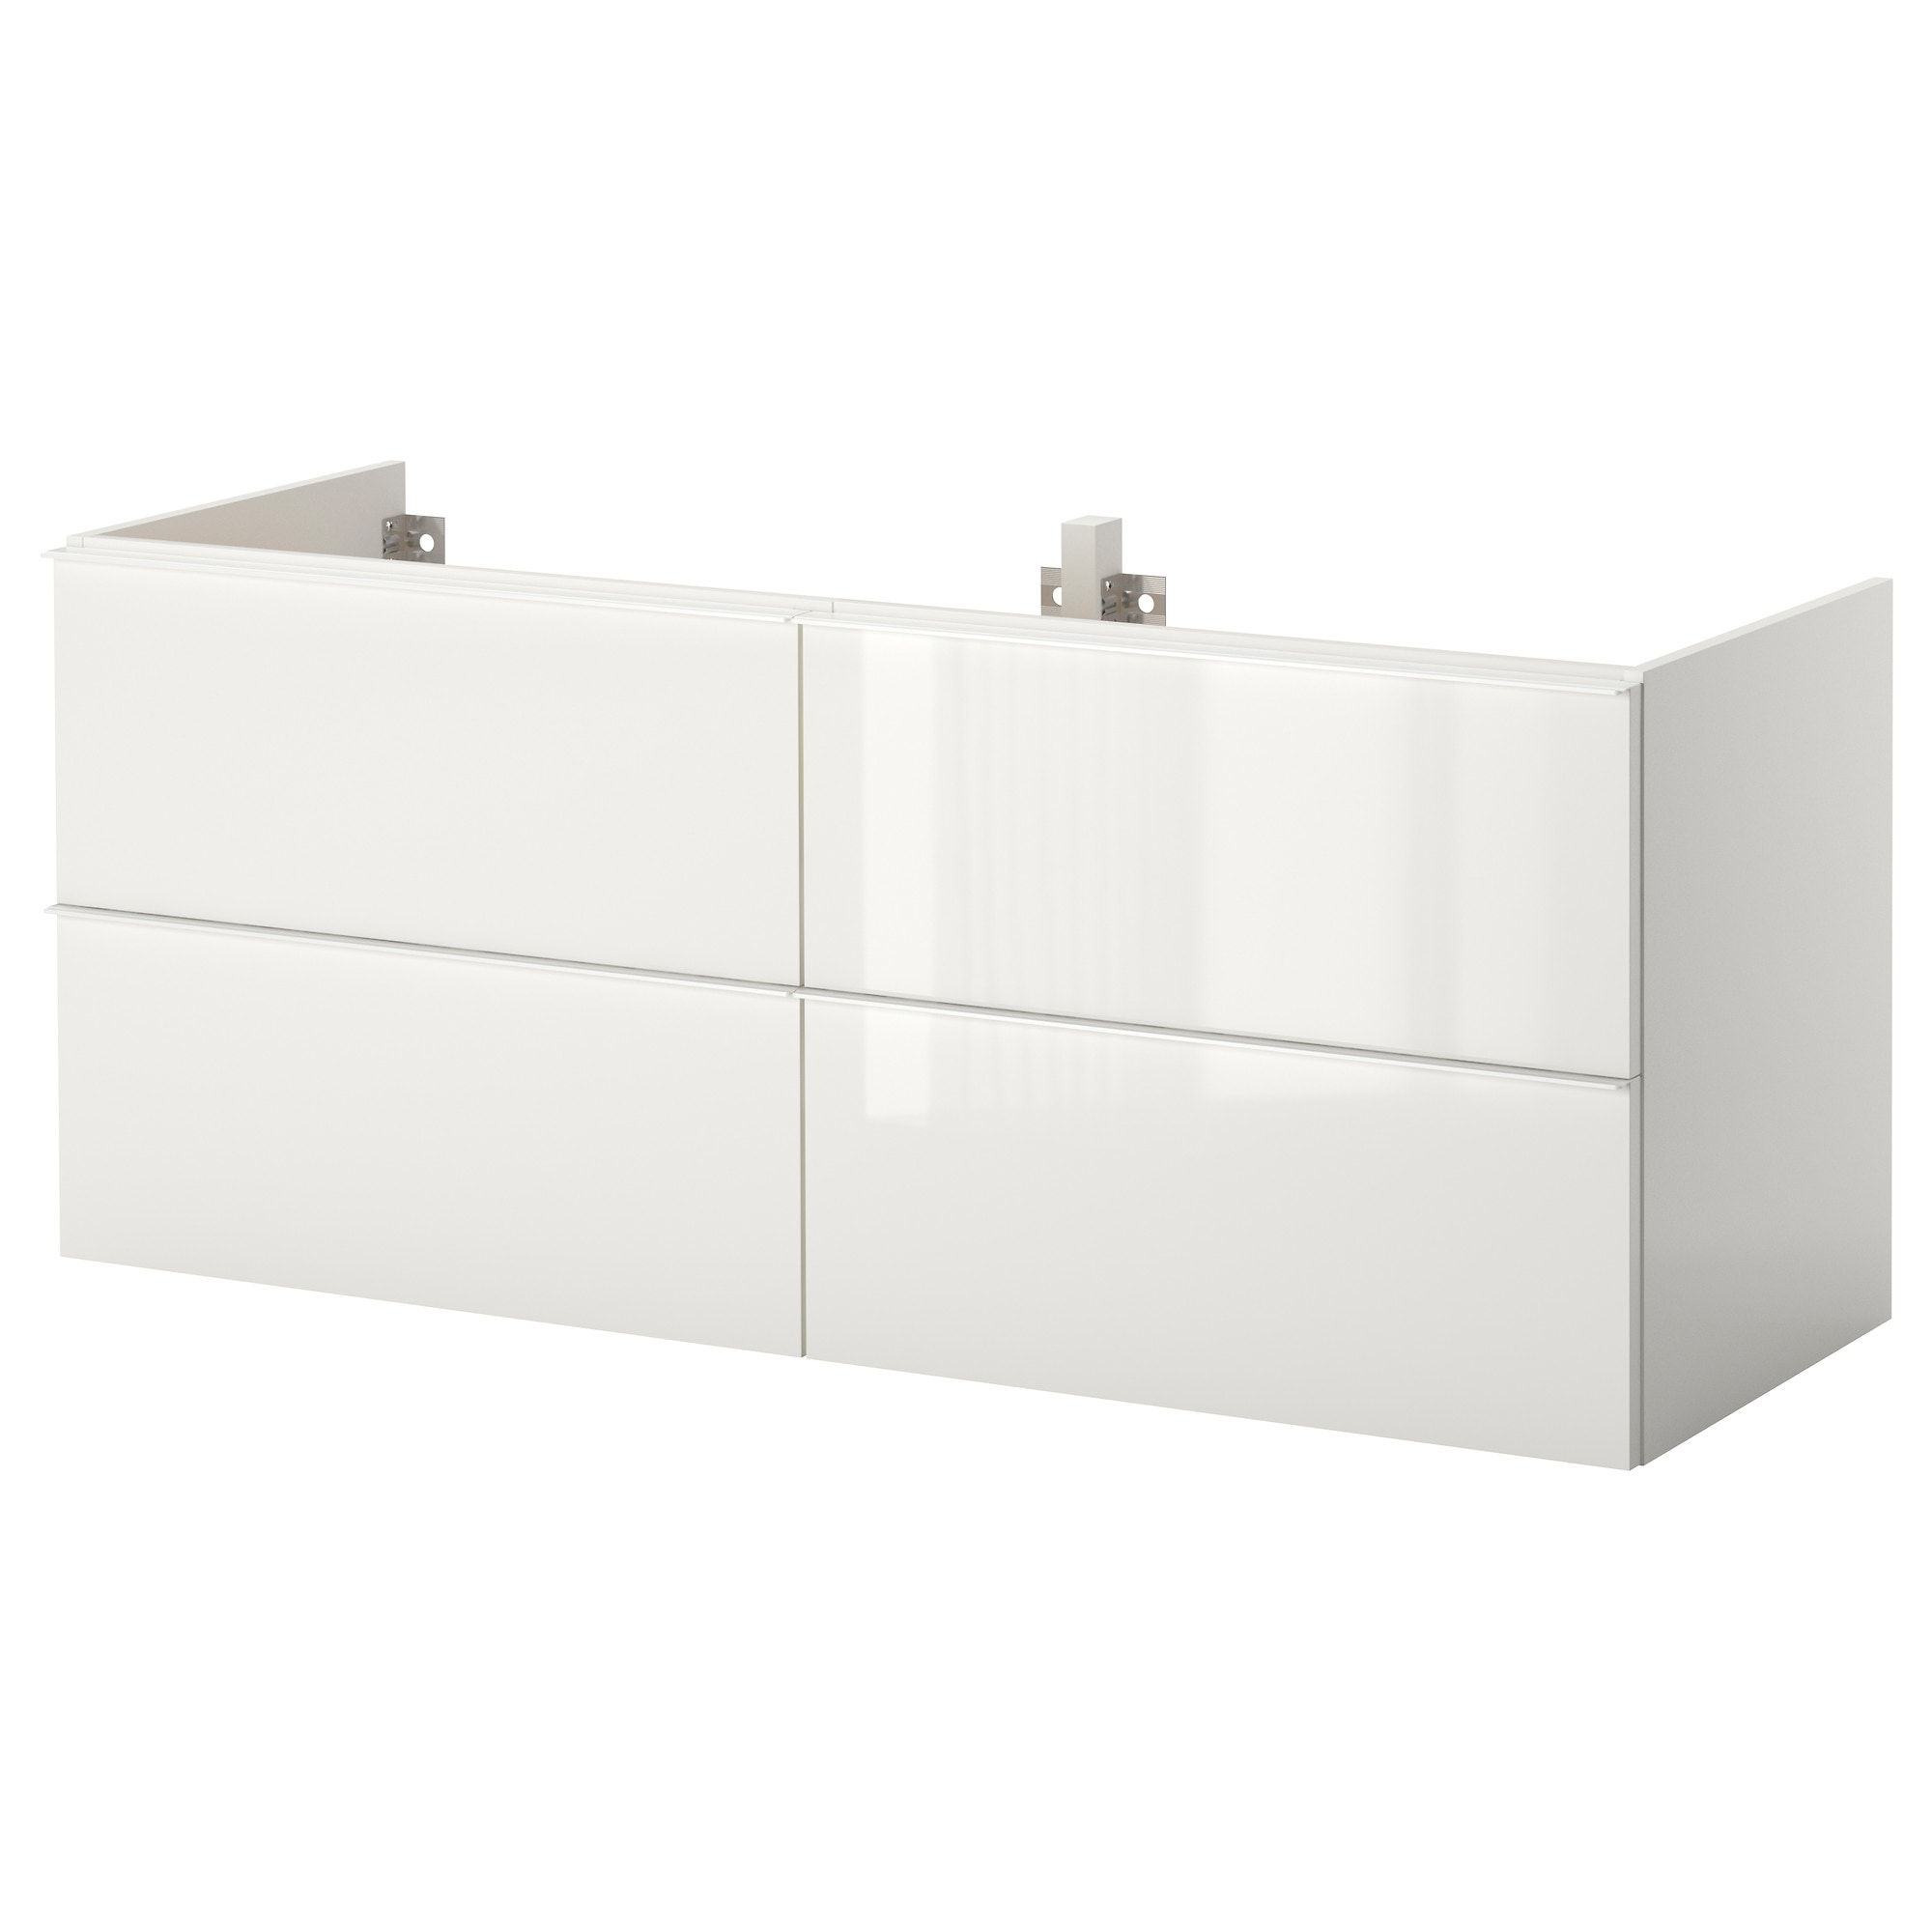 sink cabinets bathroom ikea godmorgon sink cabinet with 4